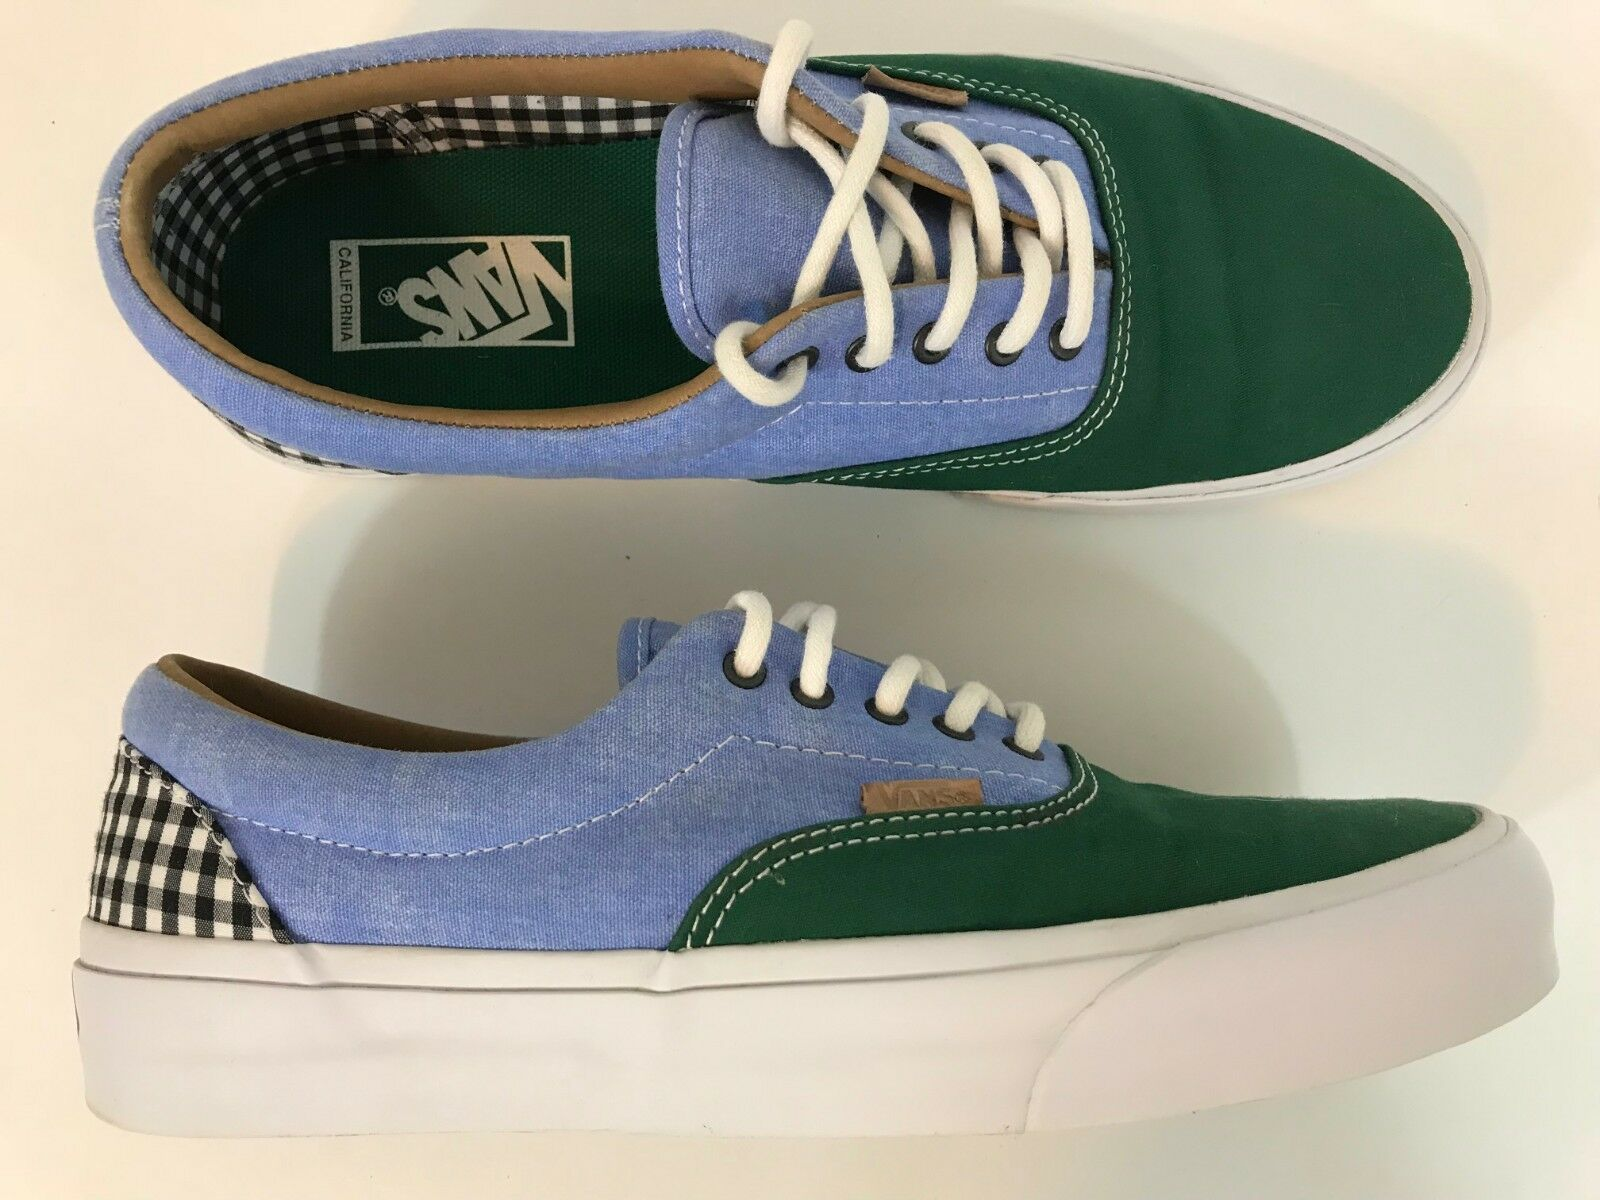 Vans Mens Casual shoes Size 10.5 bluee Green Checker Excellent Fast Shipping